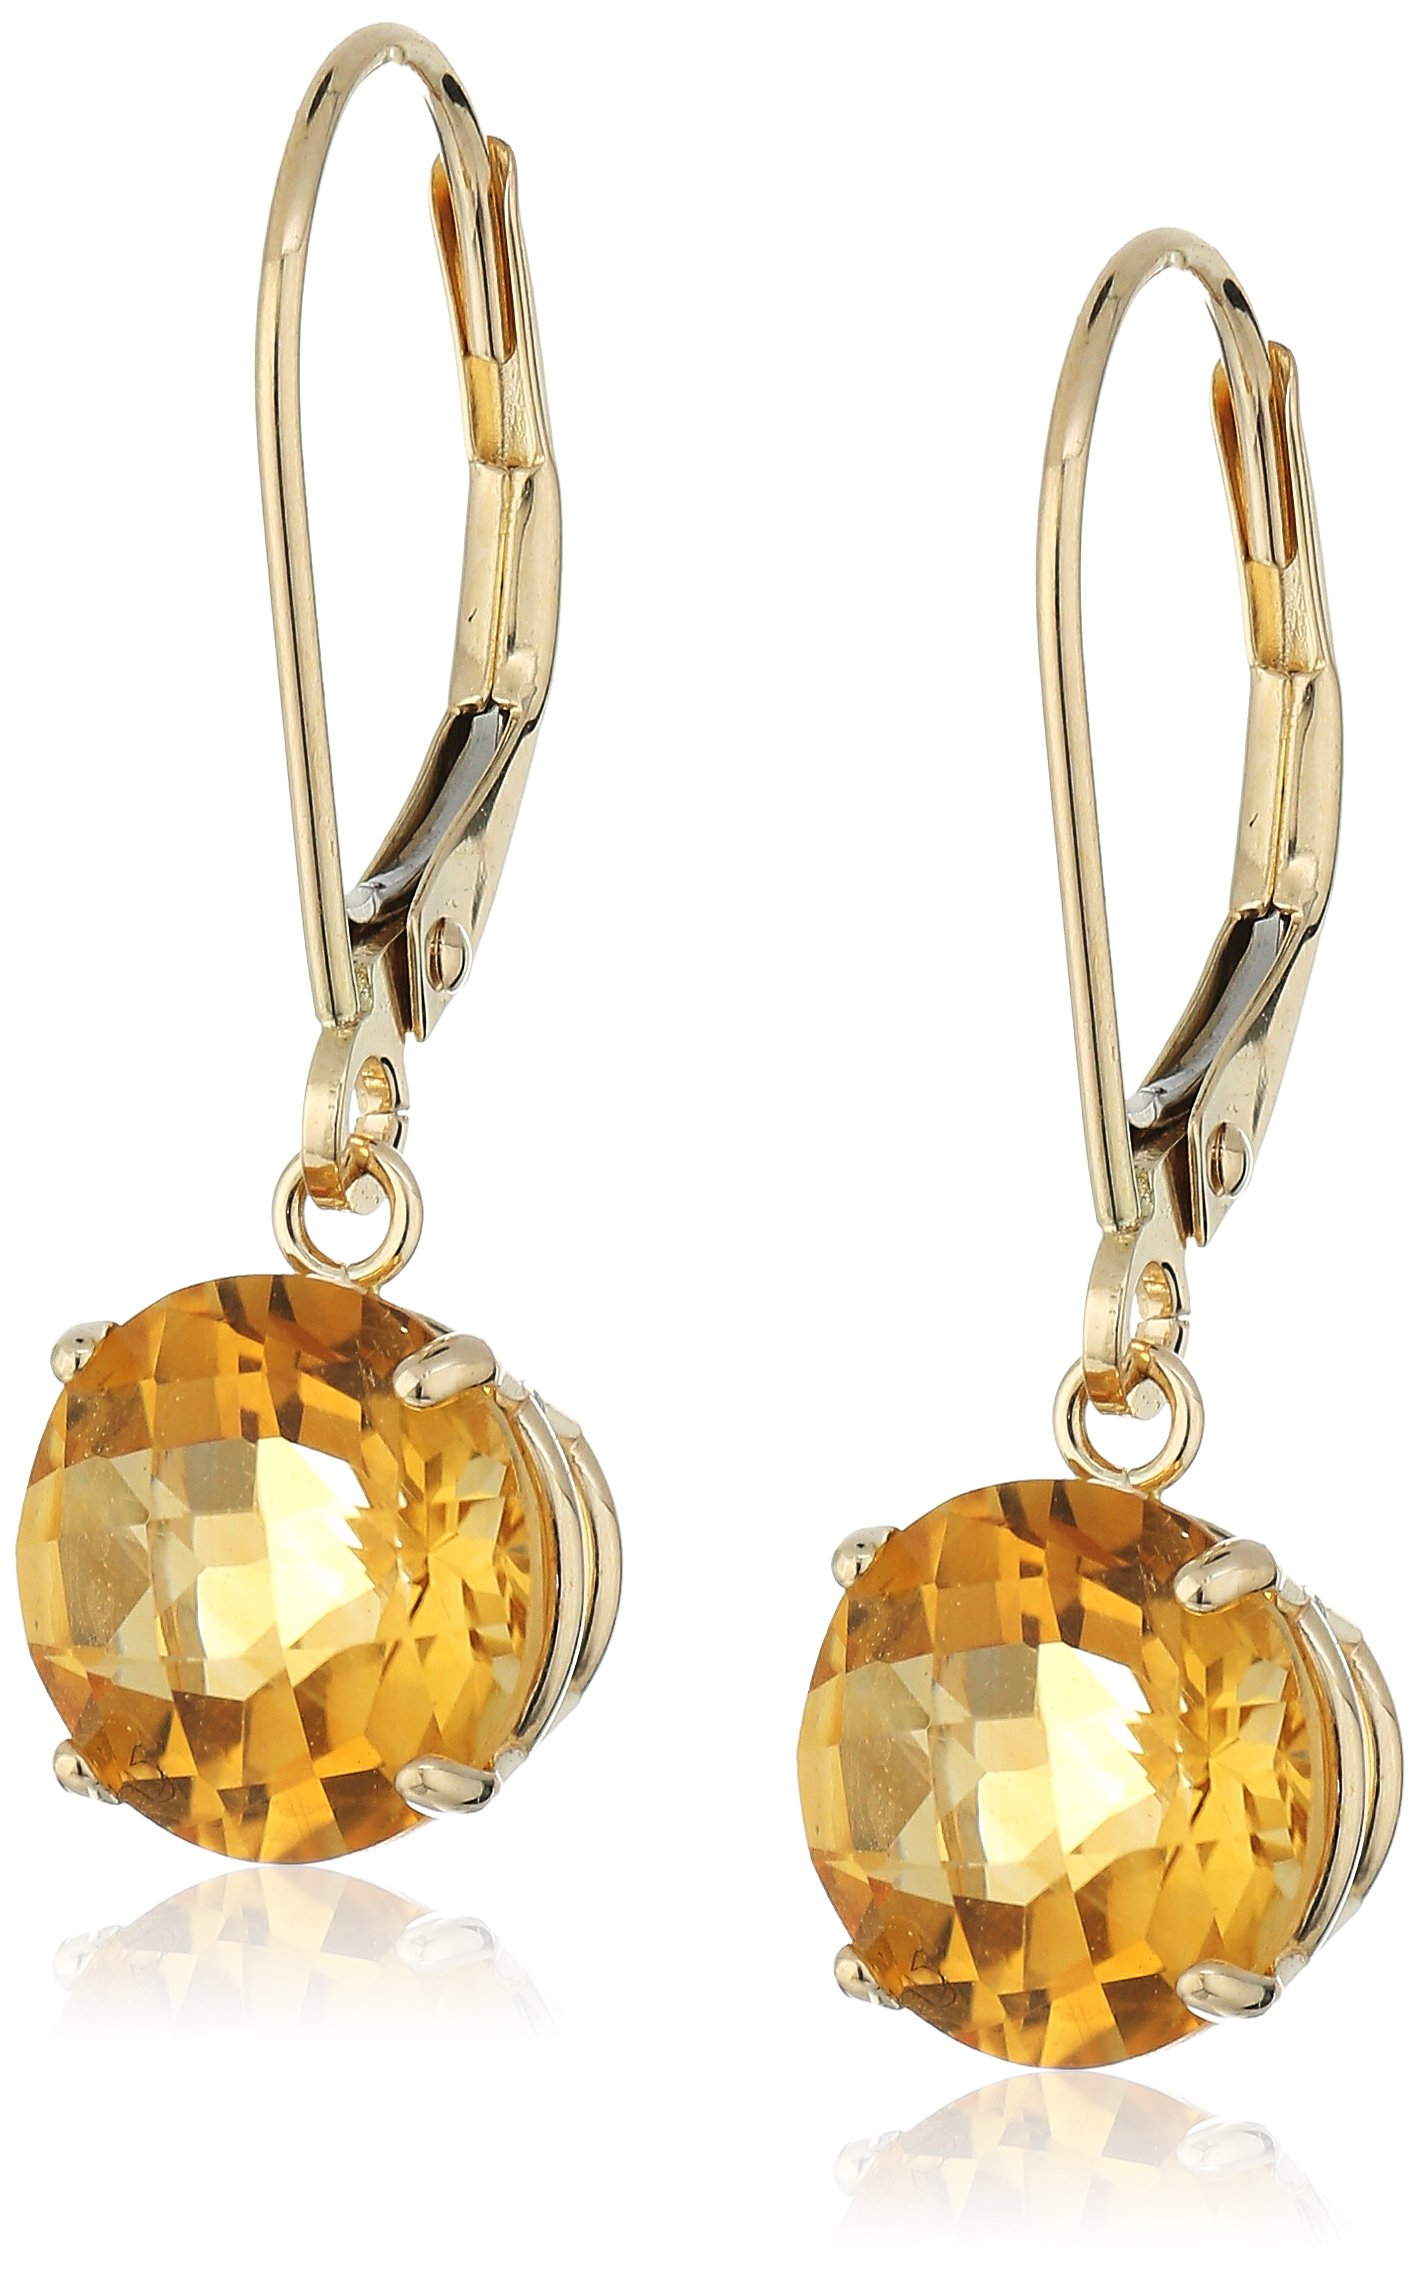 10k Yellow Gold Round Checkerboard Cut Citrine Leverback Earrings (8mm)